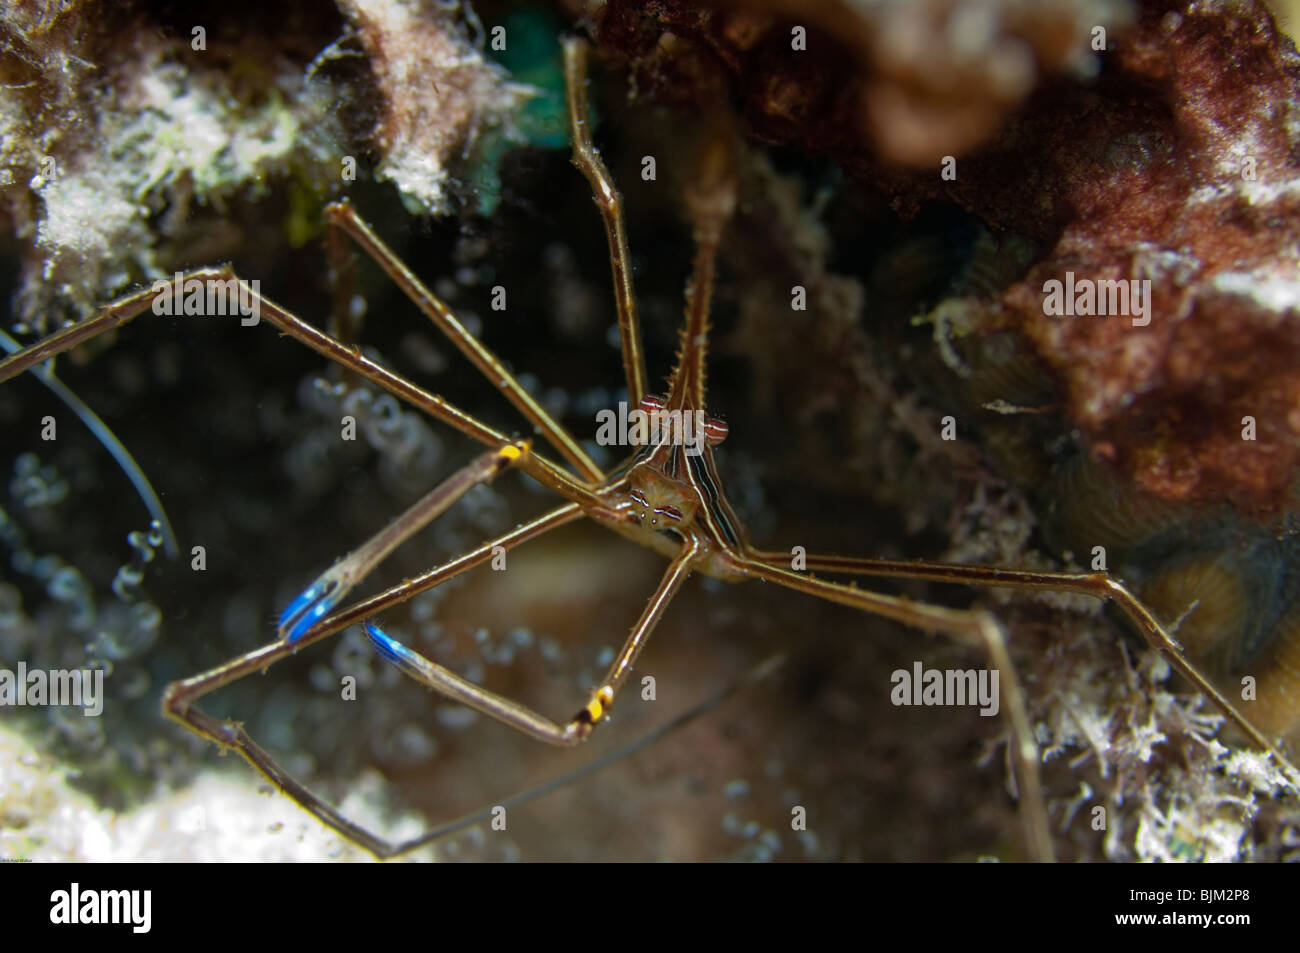 An Arrow Crab stands its' ground when confronted by the photographer. Stock Photo